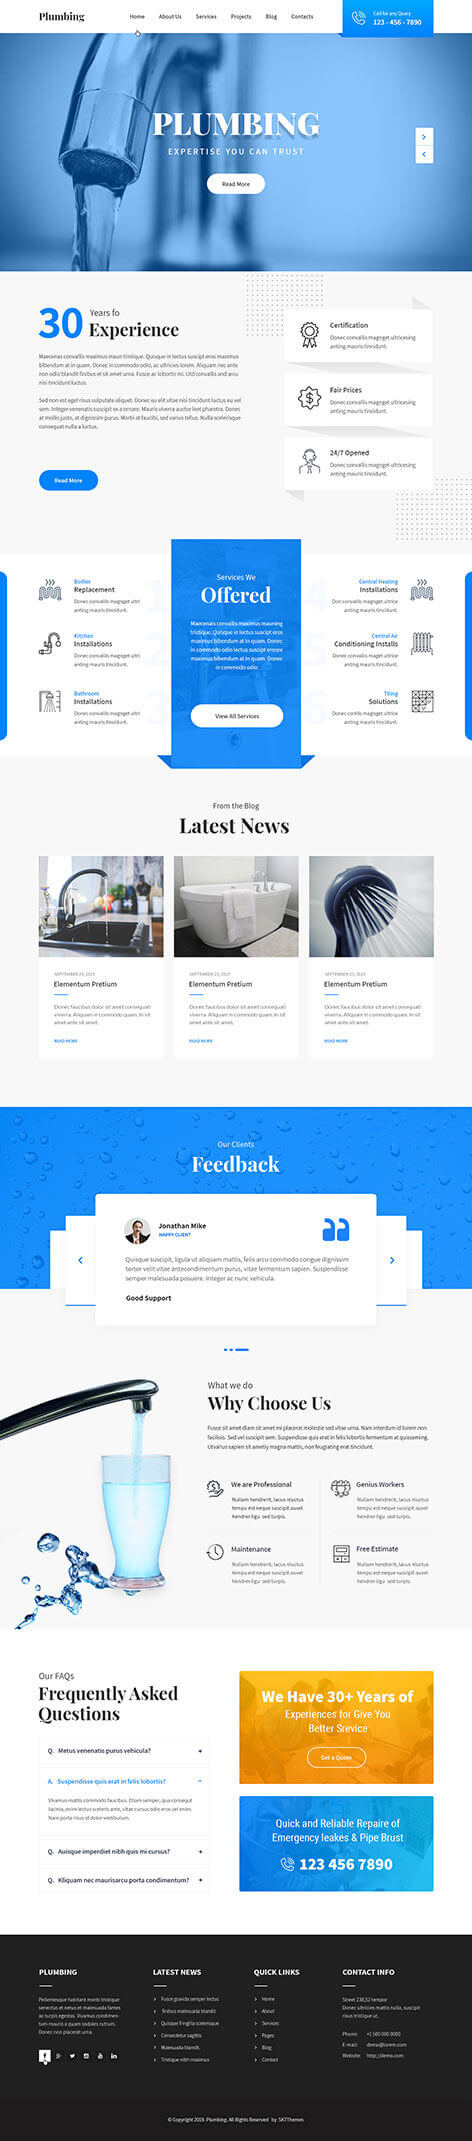 plumbing services WordPress theme